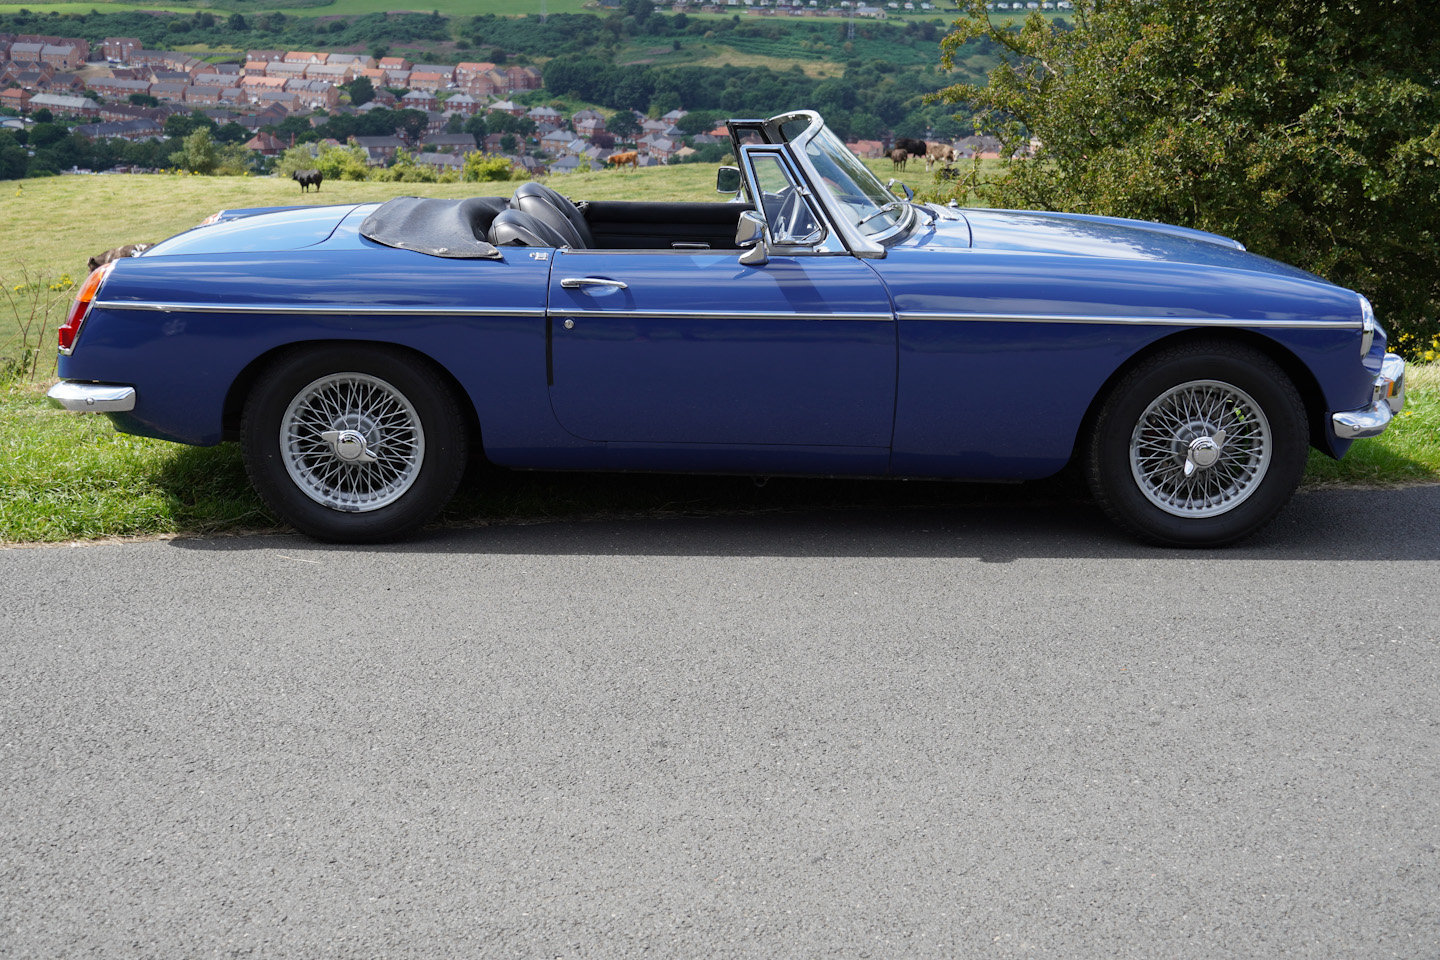 1968 MGB Roadster - Original UK Numbers Matching Car For Sale (picture 2 of 10)